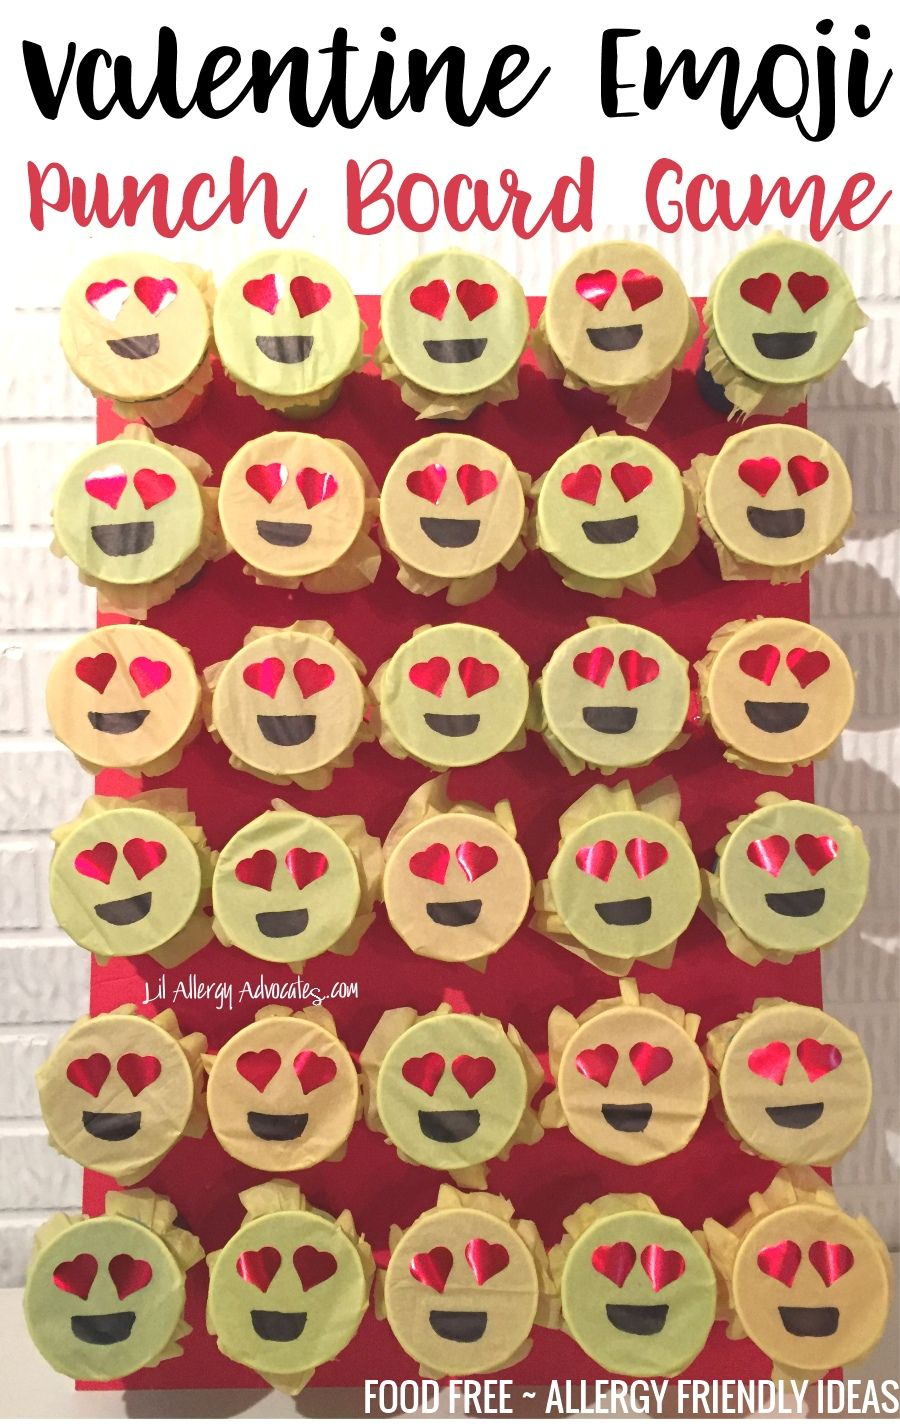 Instructions for Emoji Valentine Game. FOOD FREE fun for